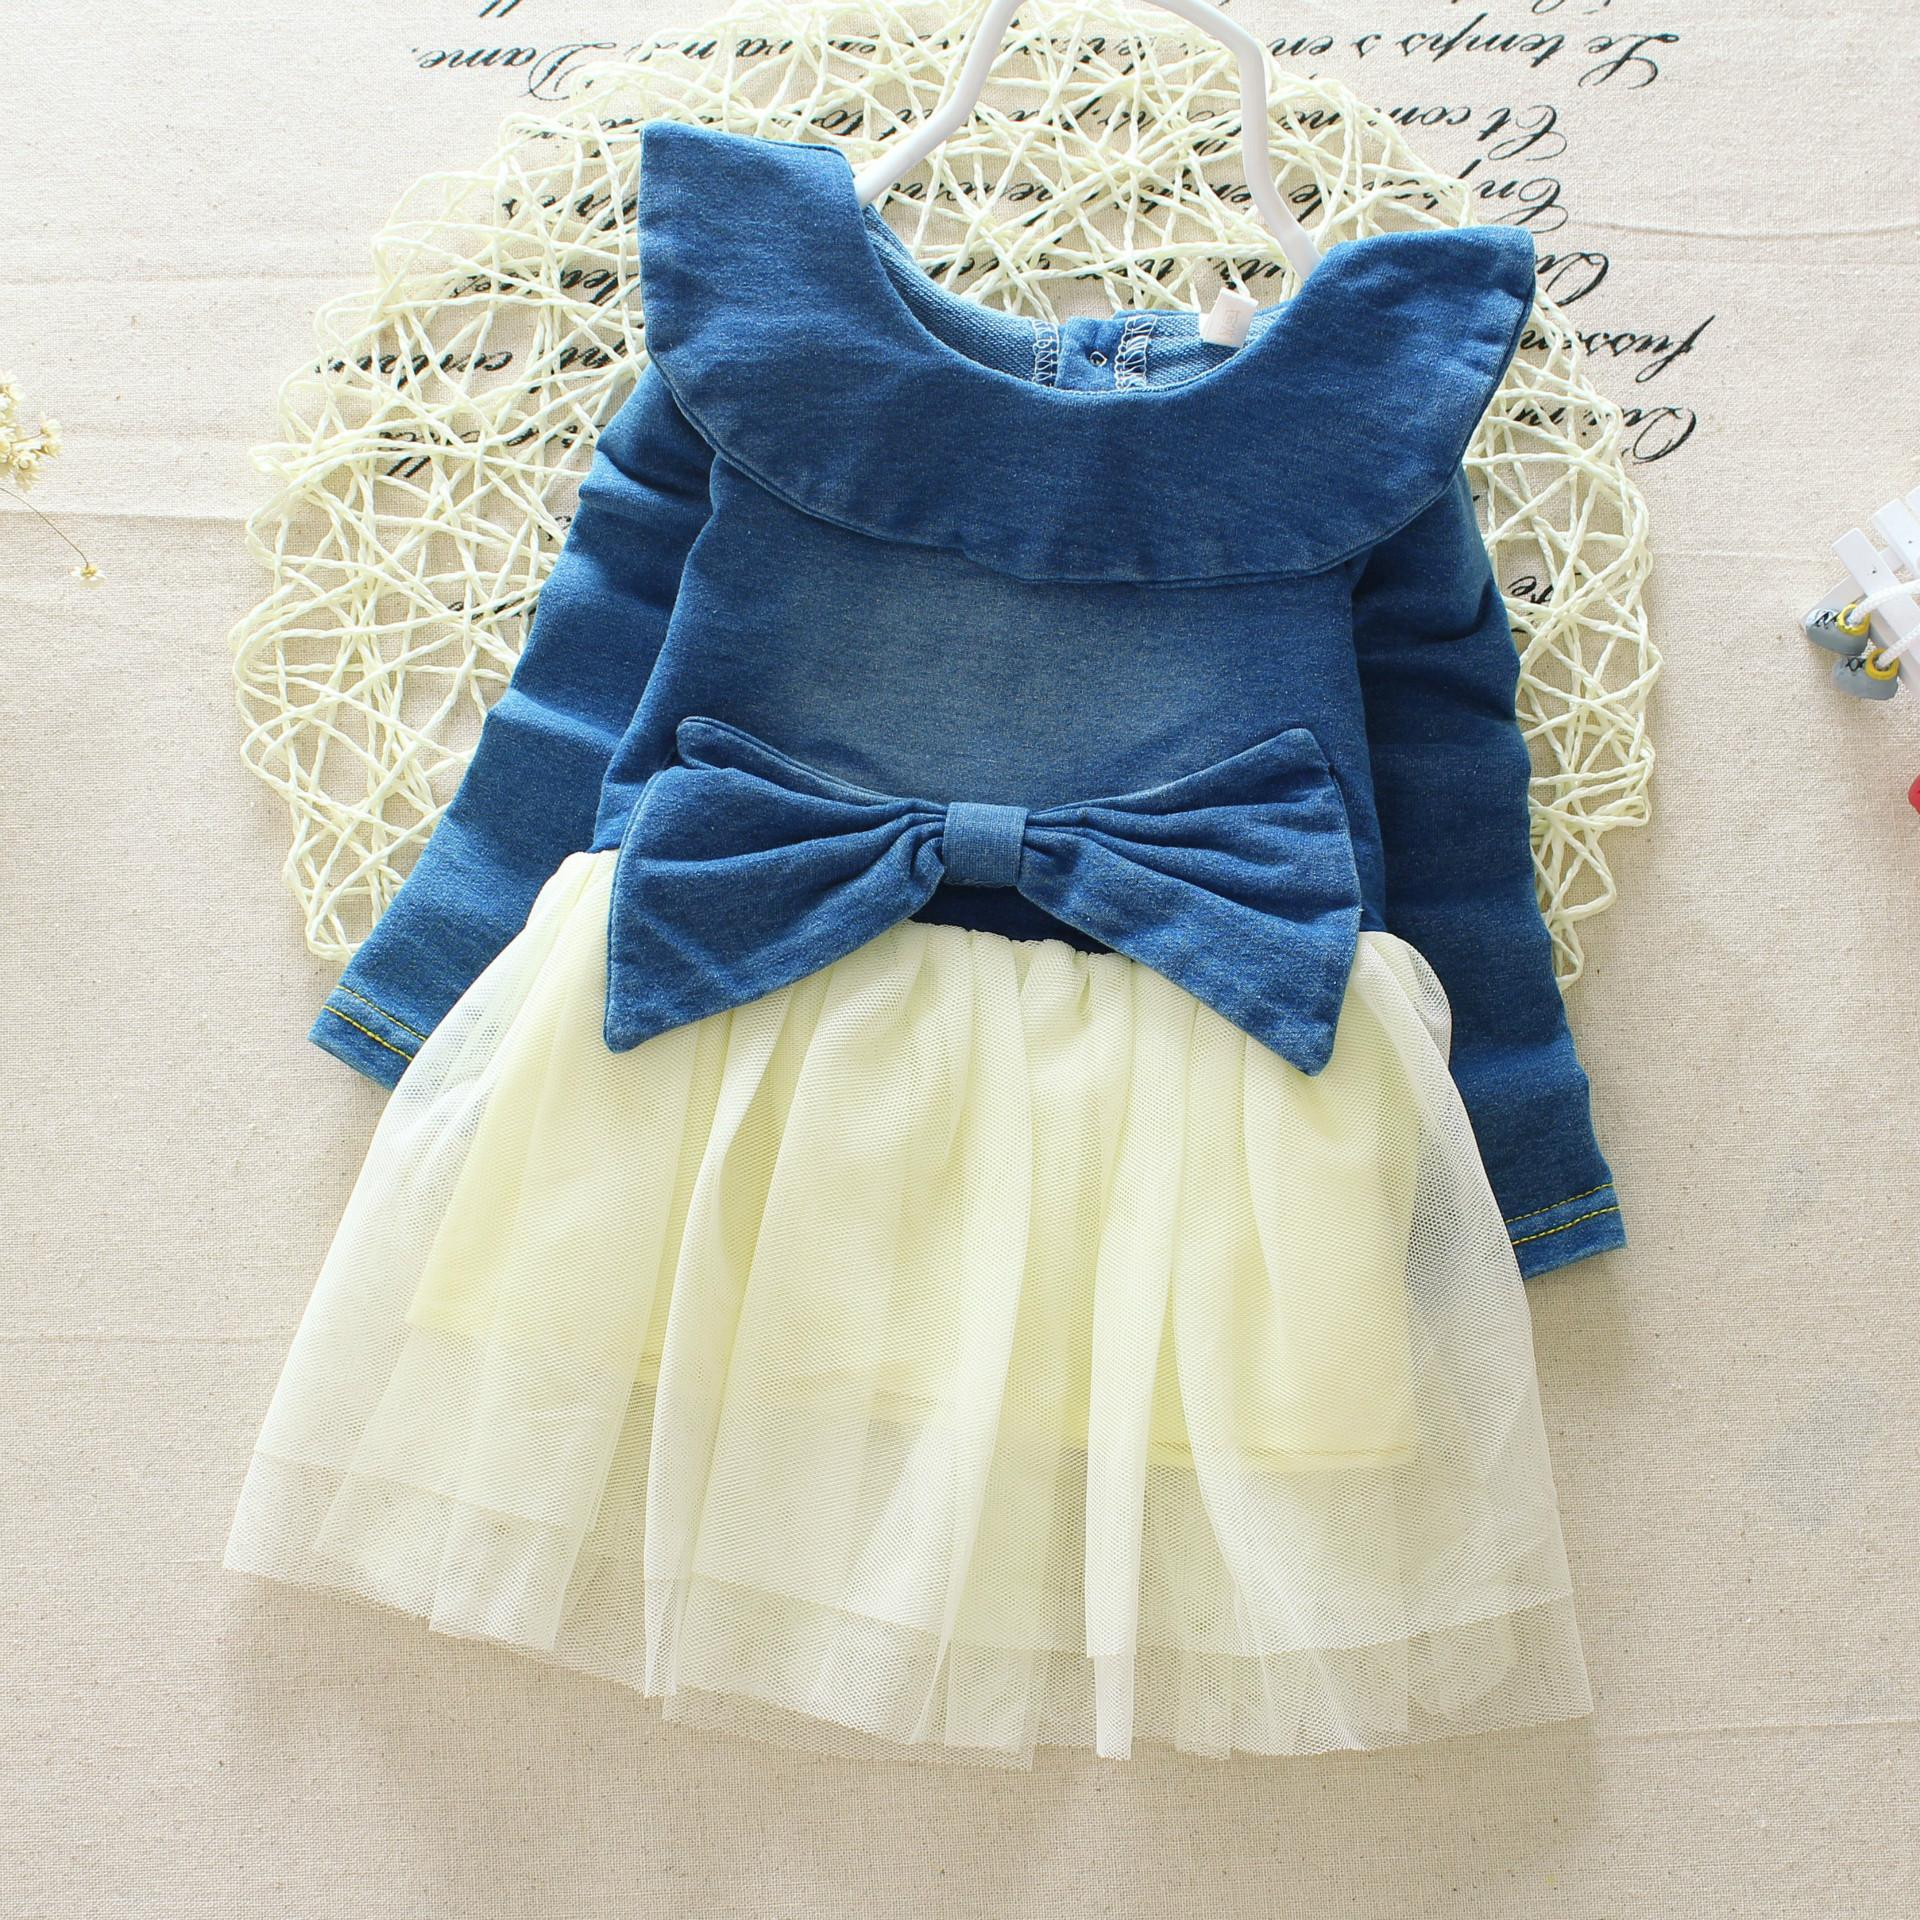 New Children s Clothing Washed Denim Kids Jeans Suspender Dress Lace